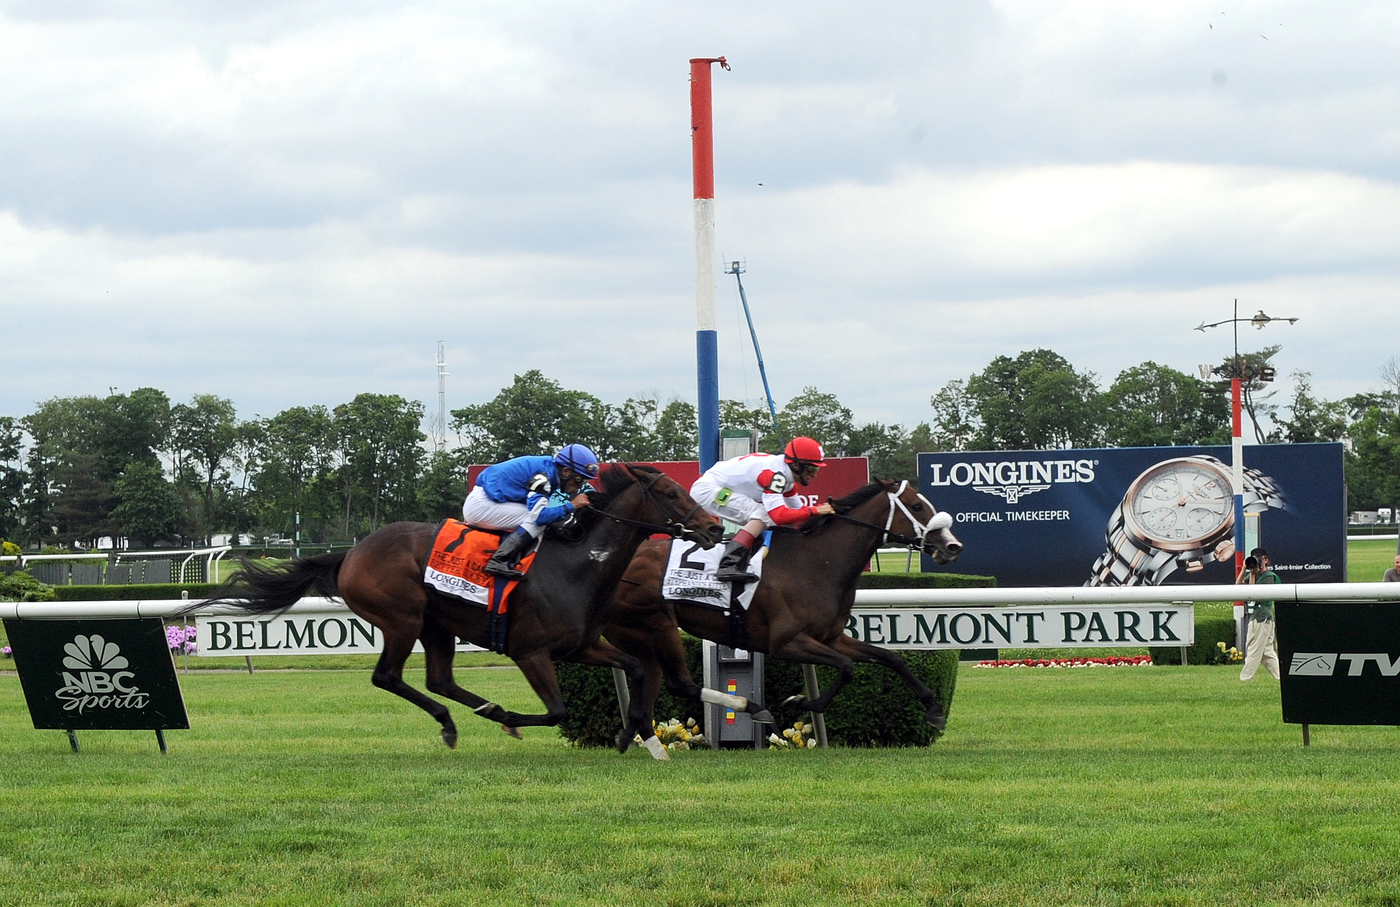 Longines Flat Racing Event: Longines awards elegant timepieces to owner, trainer and jockey of Belmont Stakes winner, Palace Malice 2